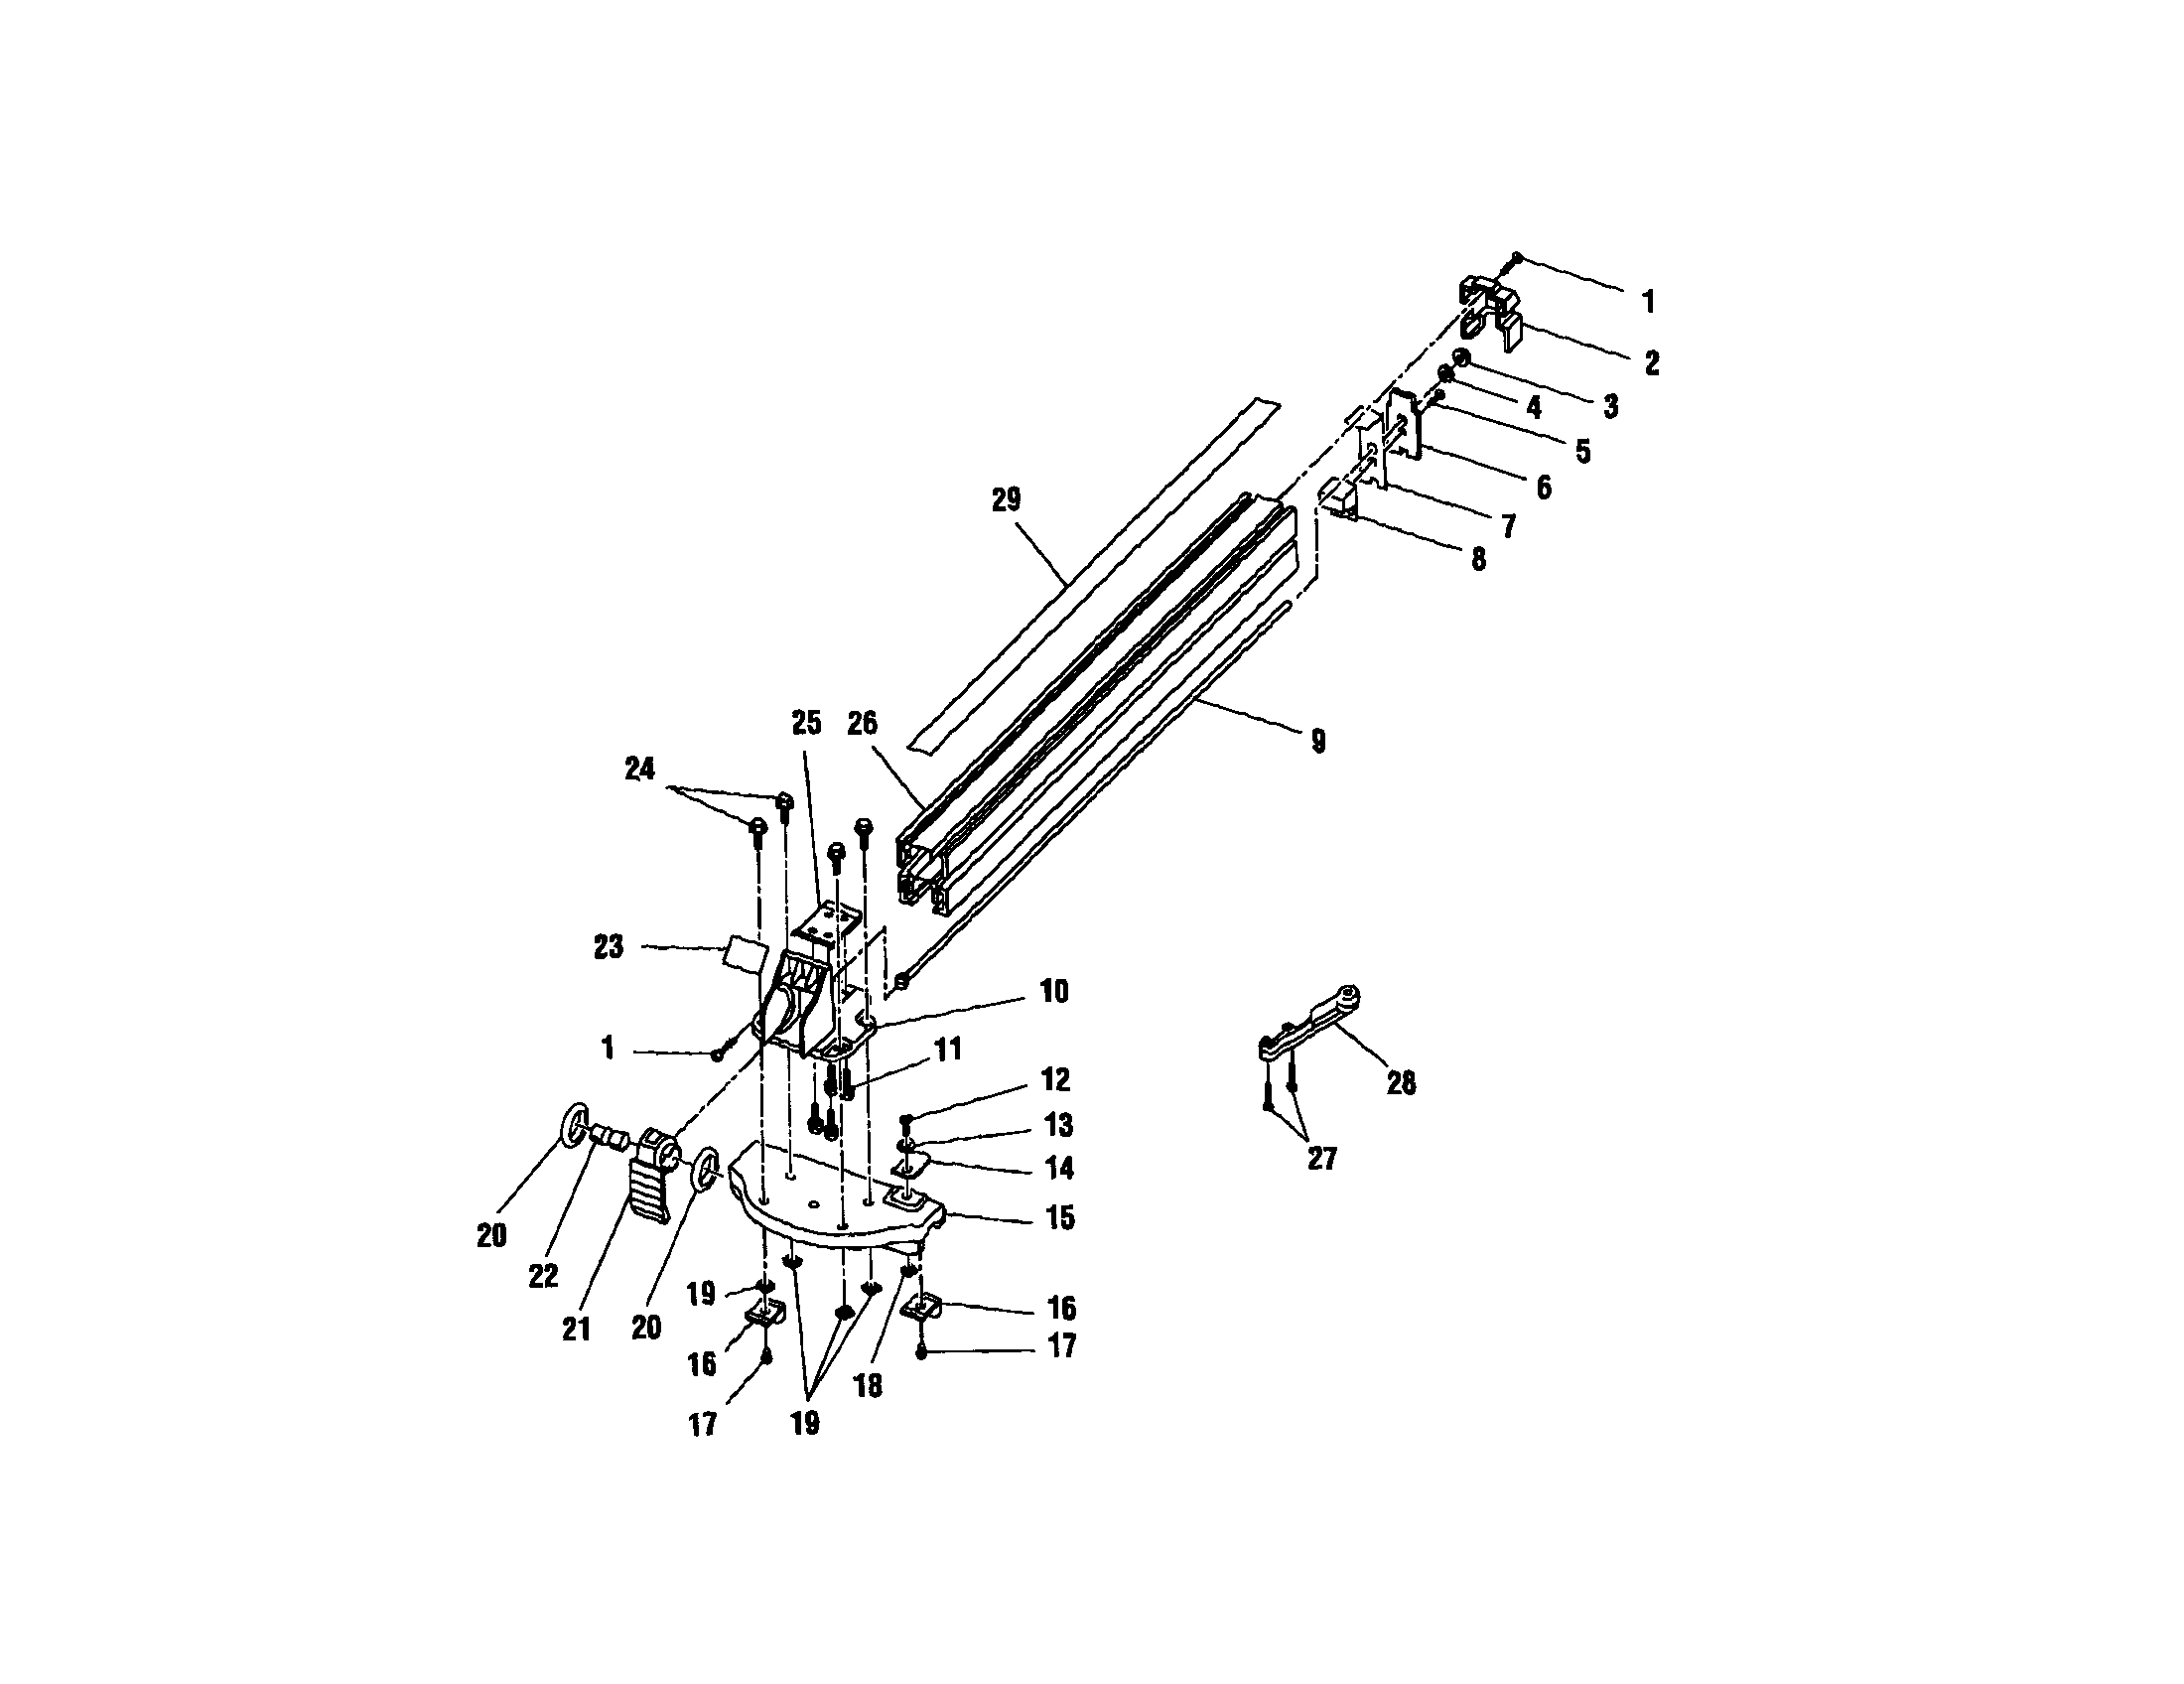 motor assembly diagram parts list for model 823662 emersonparts all